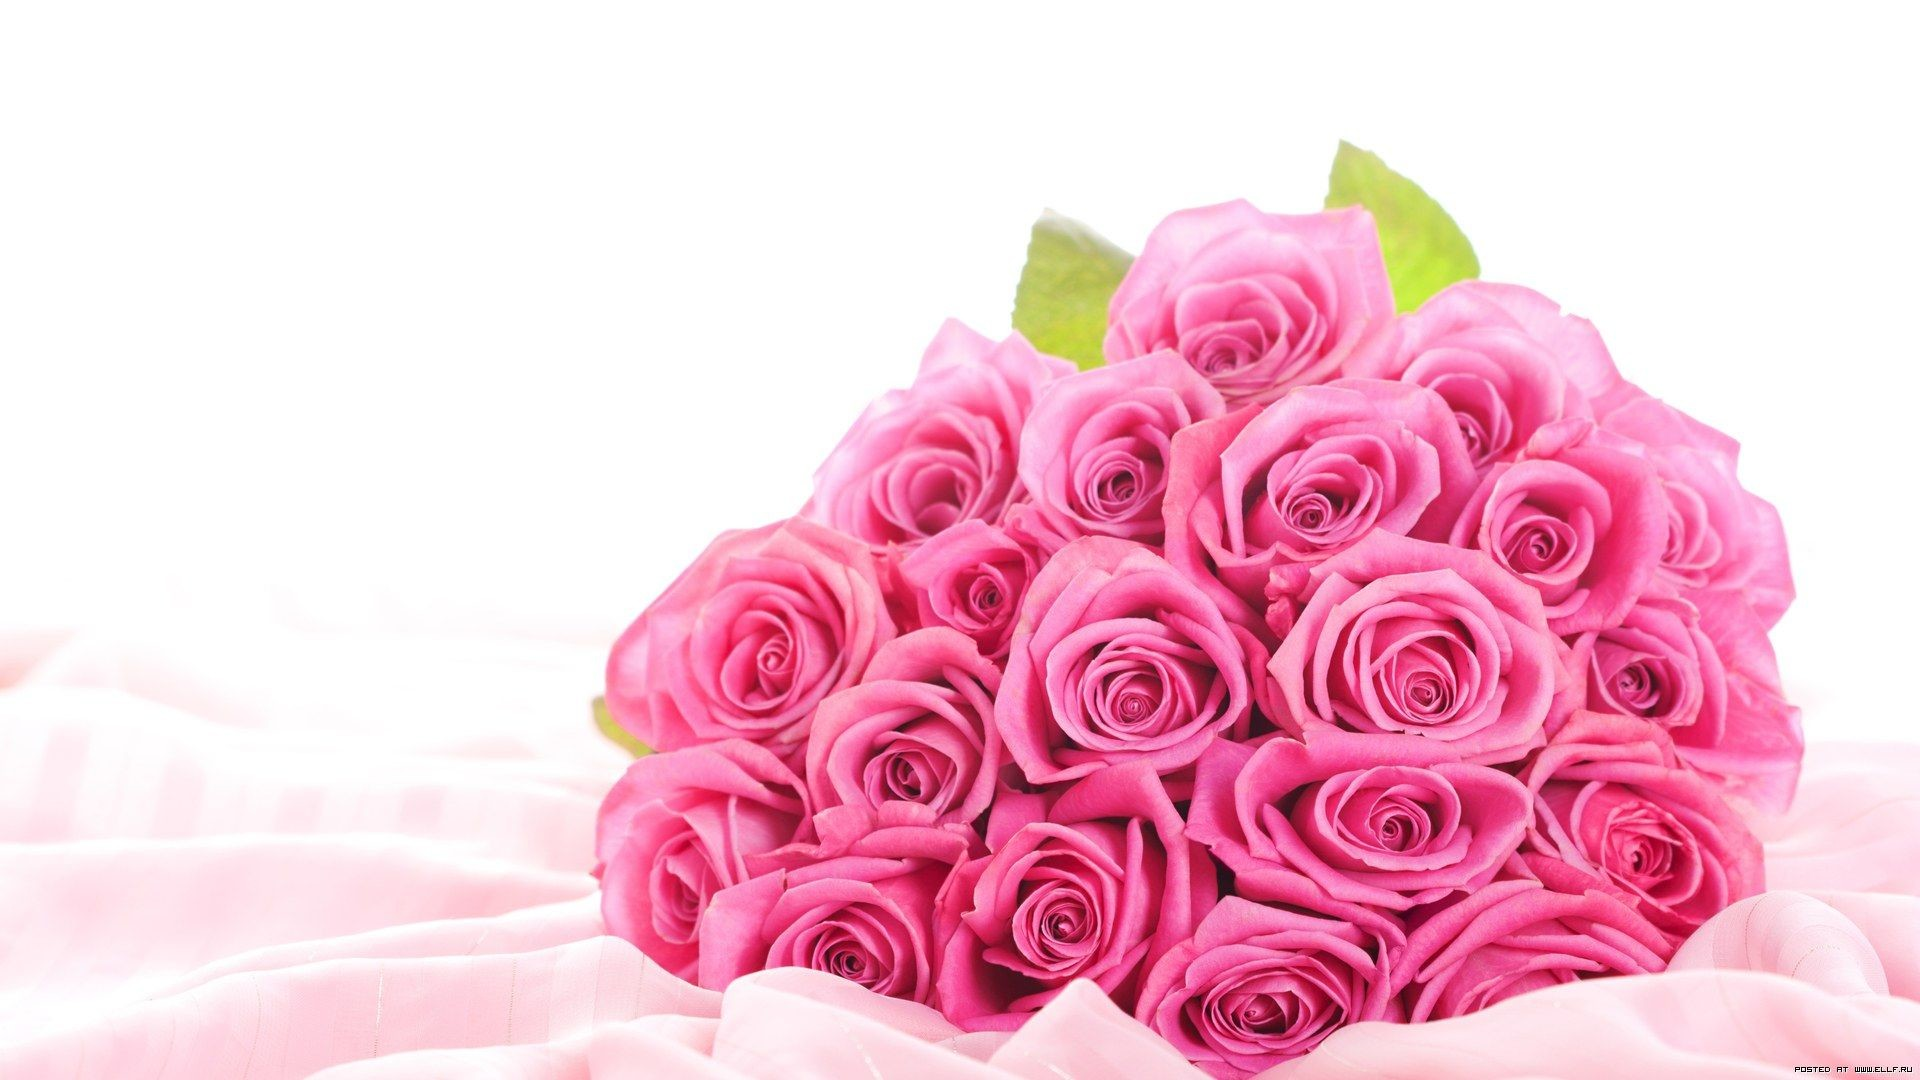 1920x1080, [rt] Beautiful Rose Wallpapers   Data Id - Flower Beautiful Pictures Pink Roses - HD Wallpaper